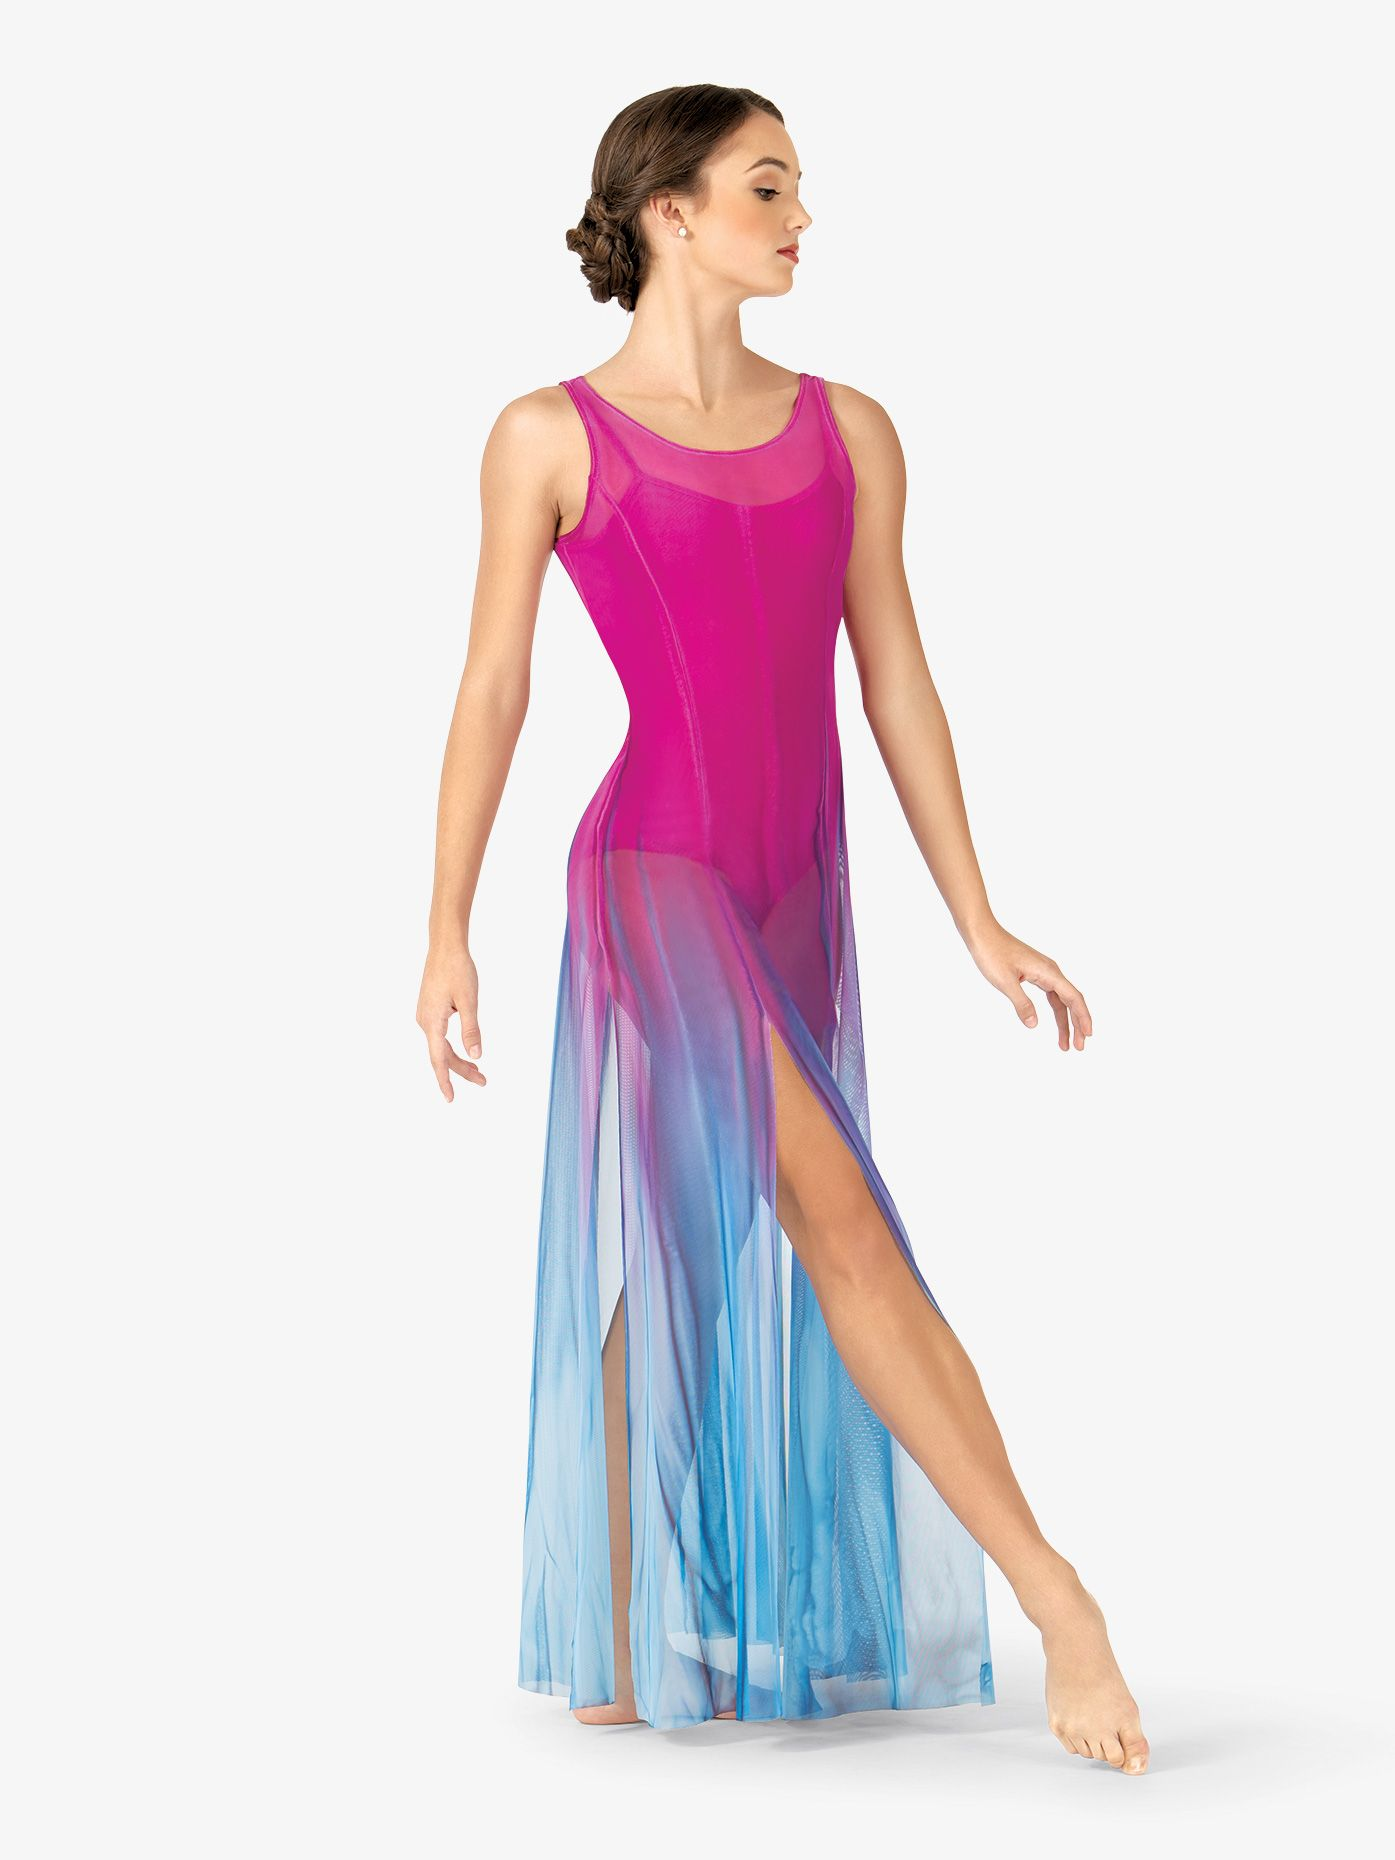 97dfb64ad16d Adult Hand Painted Long Tank Mesh Lyrical Dress